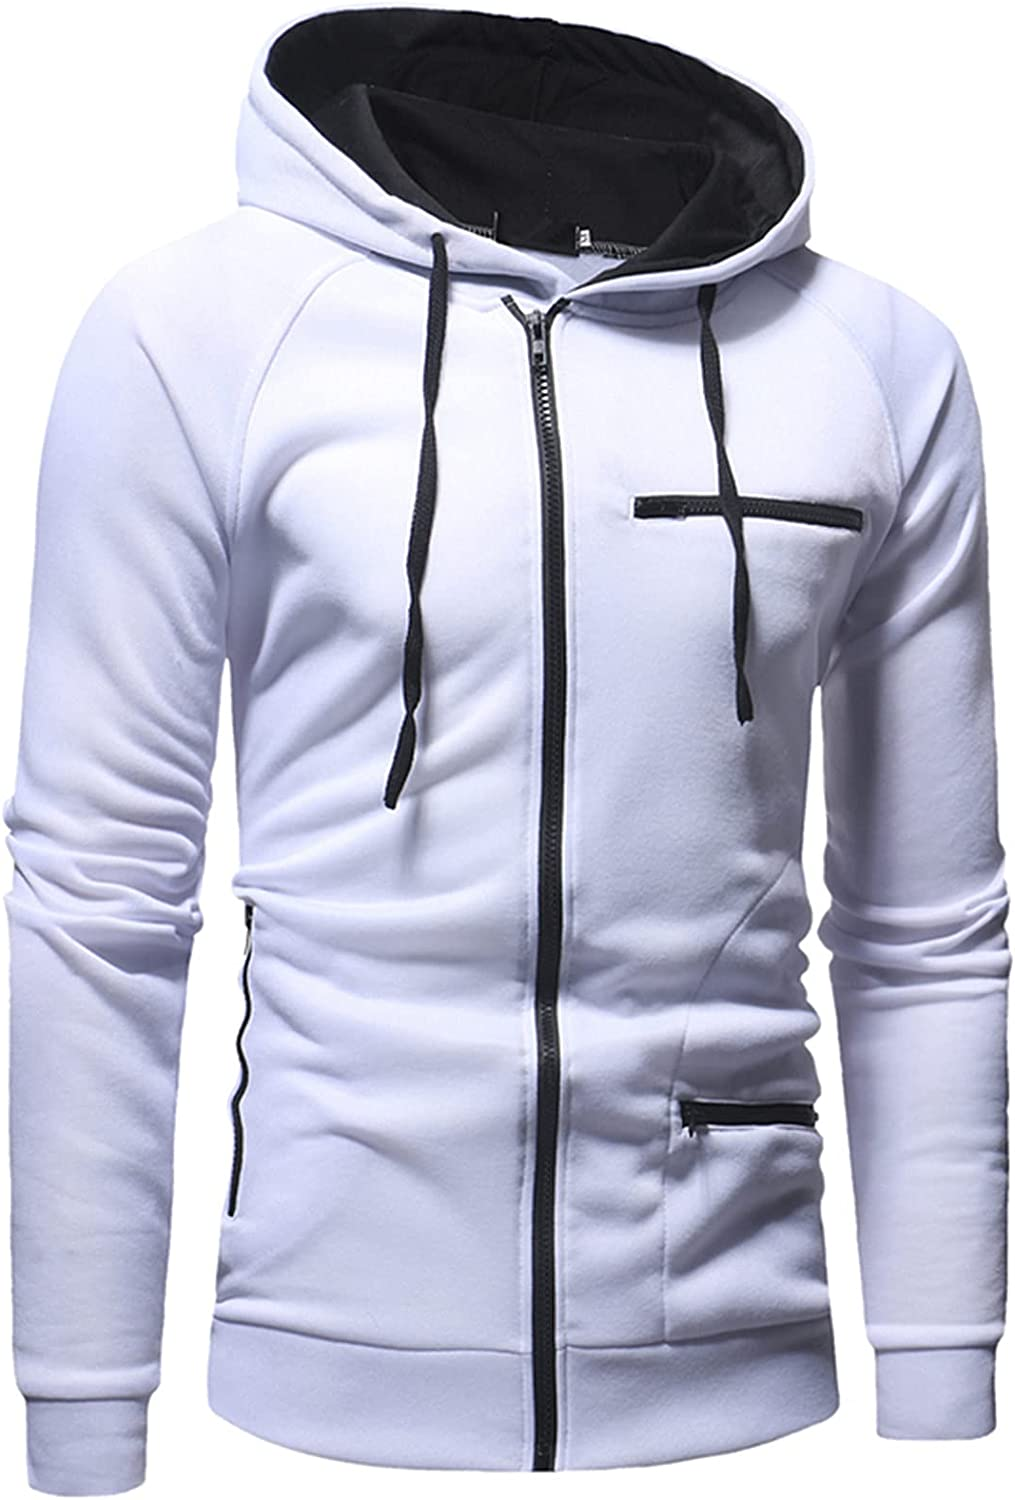 XXBR Zipper Hoodies for Mens, Fall Color Block Drawstring Hooded Sweatshirts Slim Fit Sports Workout Casual Jackets